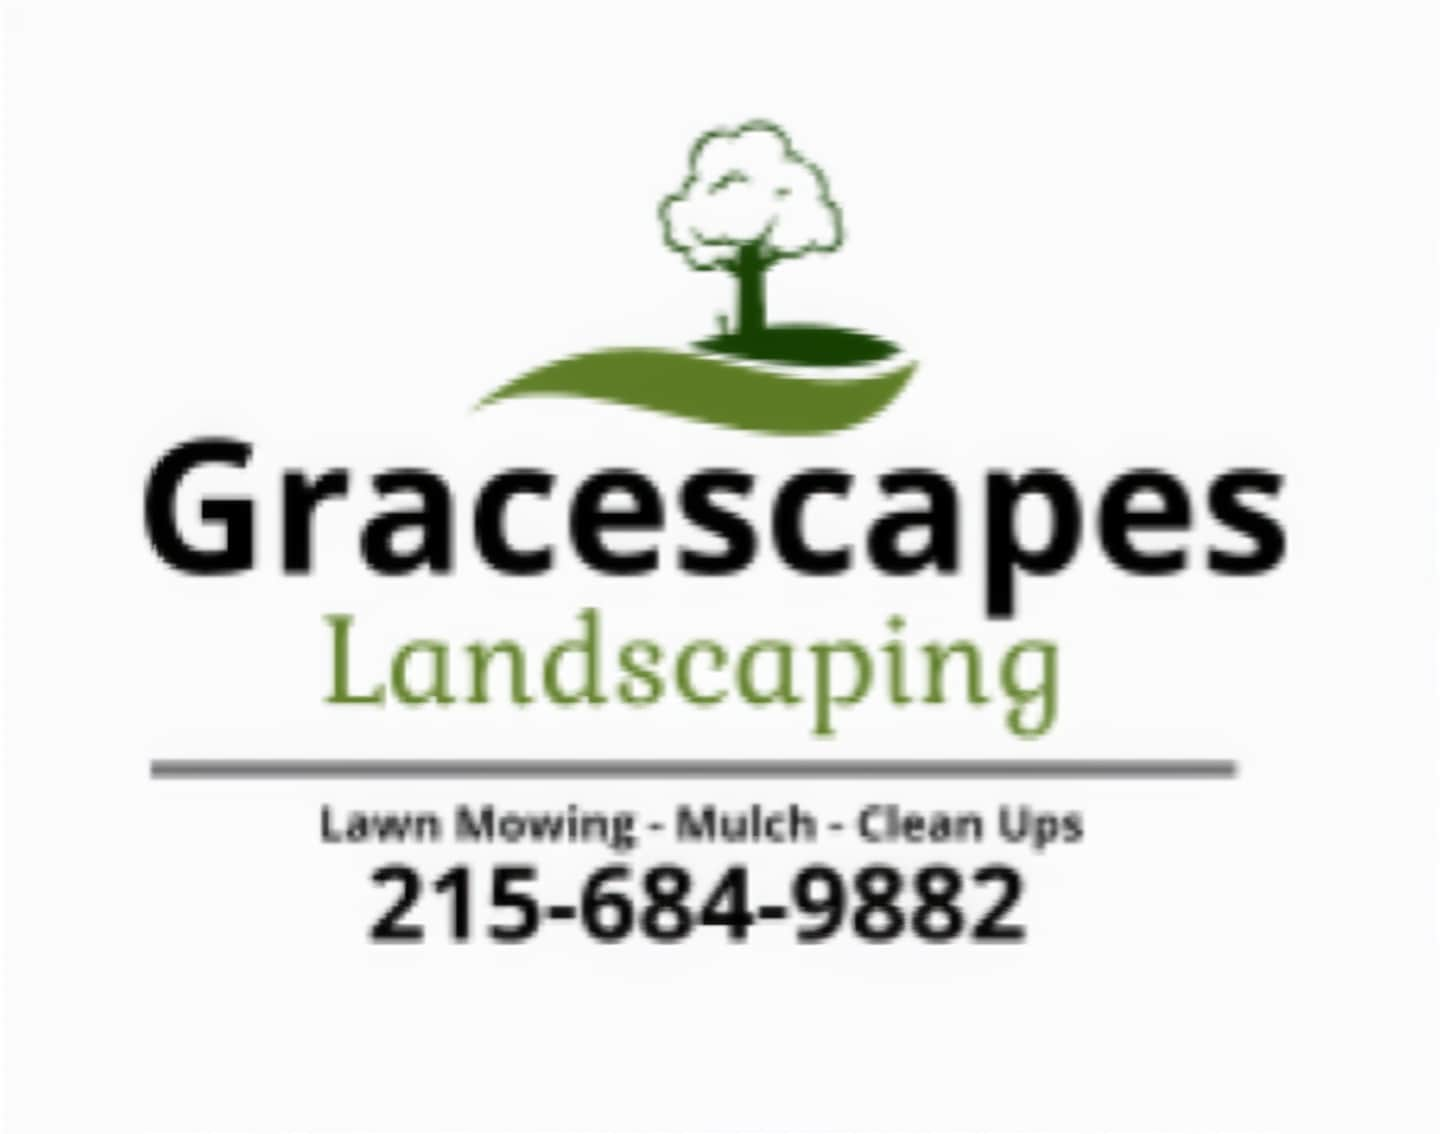 Gracescapes Landsacping